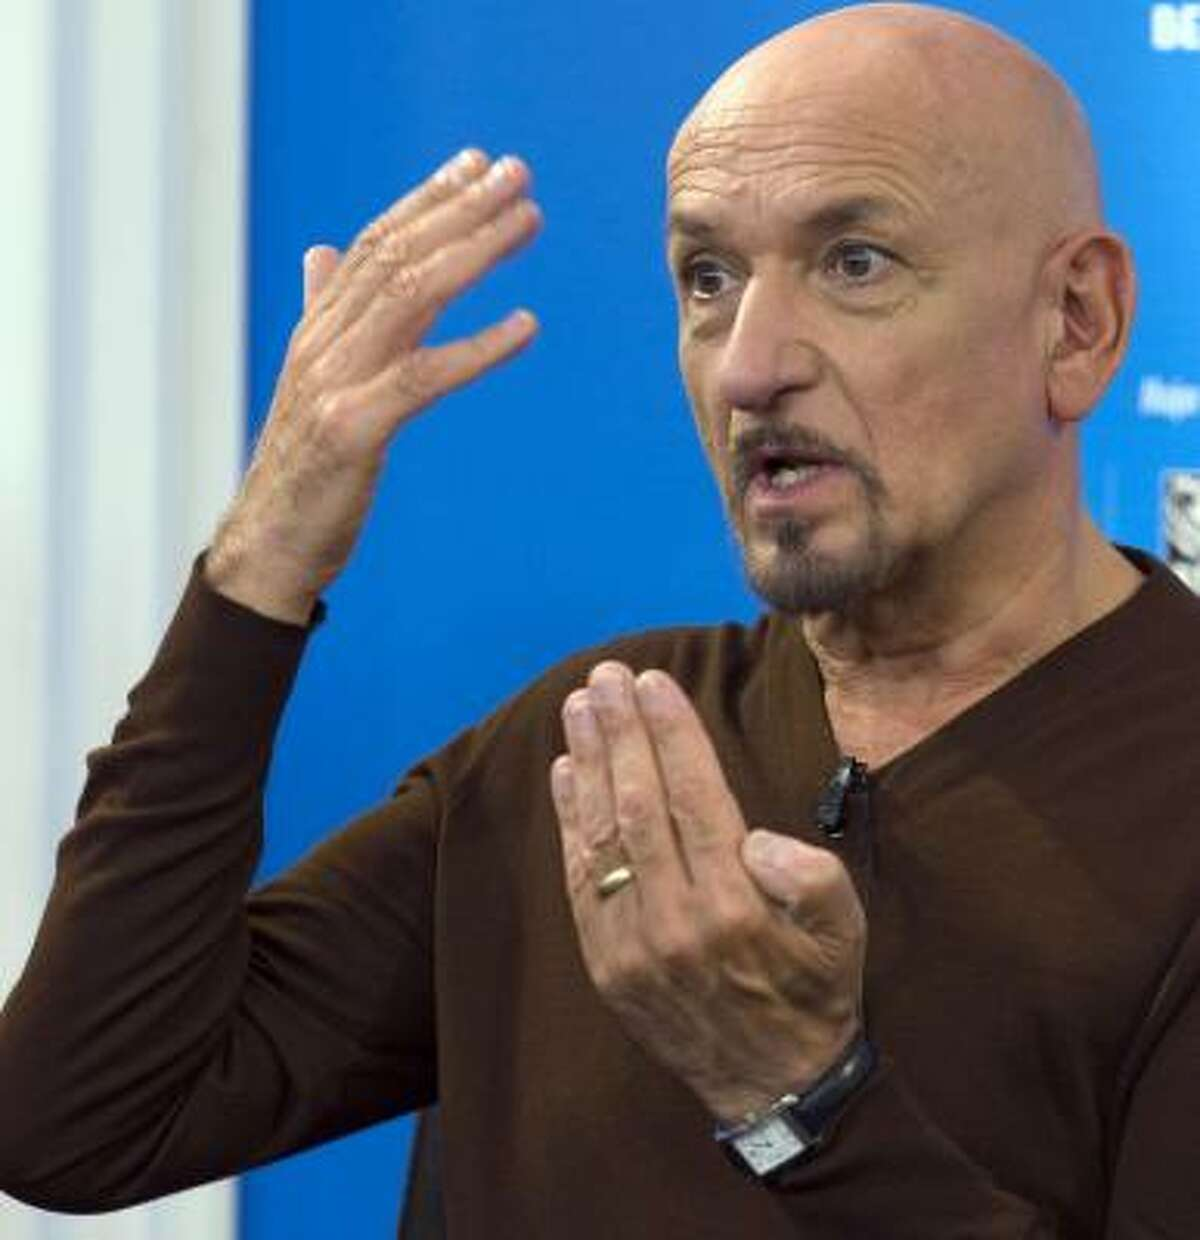 Most Ashamed to Appear in The Love Guru: Ben Kingsley